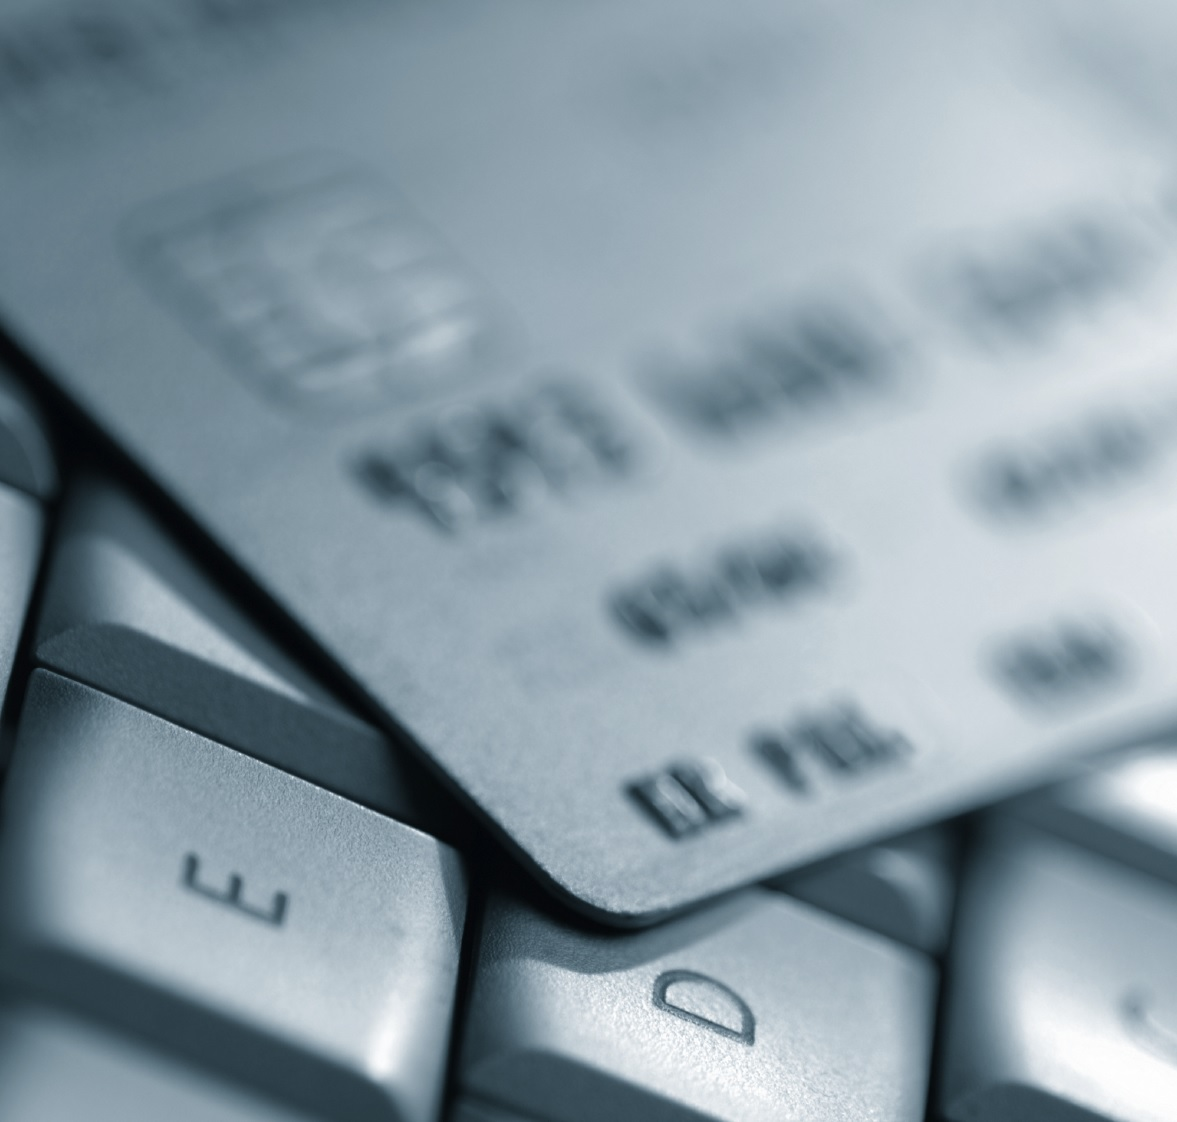 eurobase siena banking software for FX payments